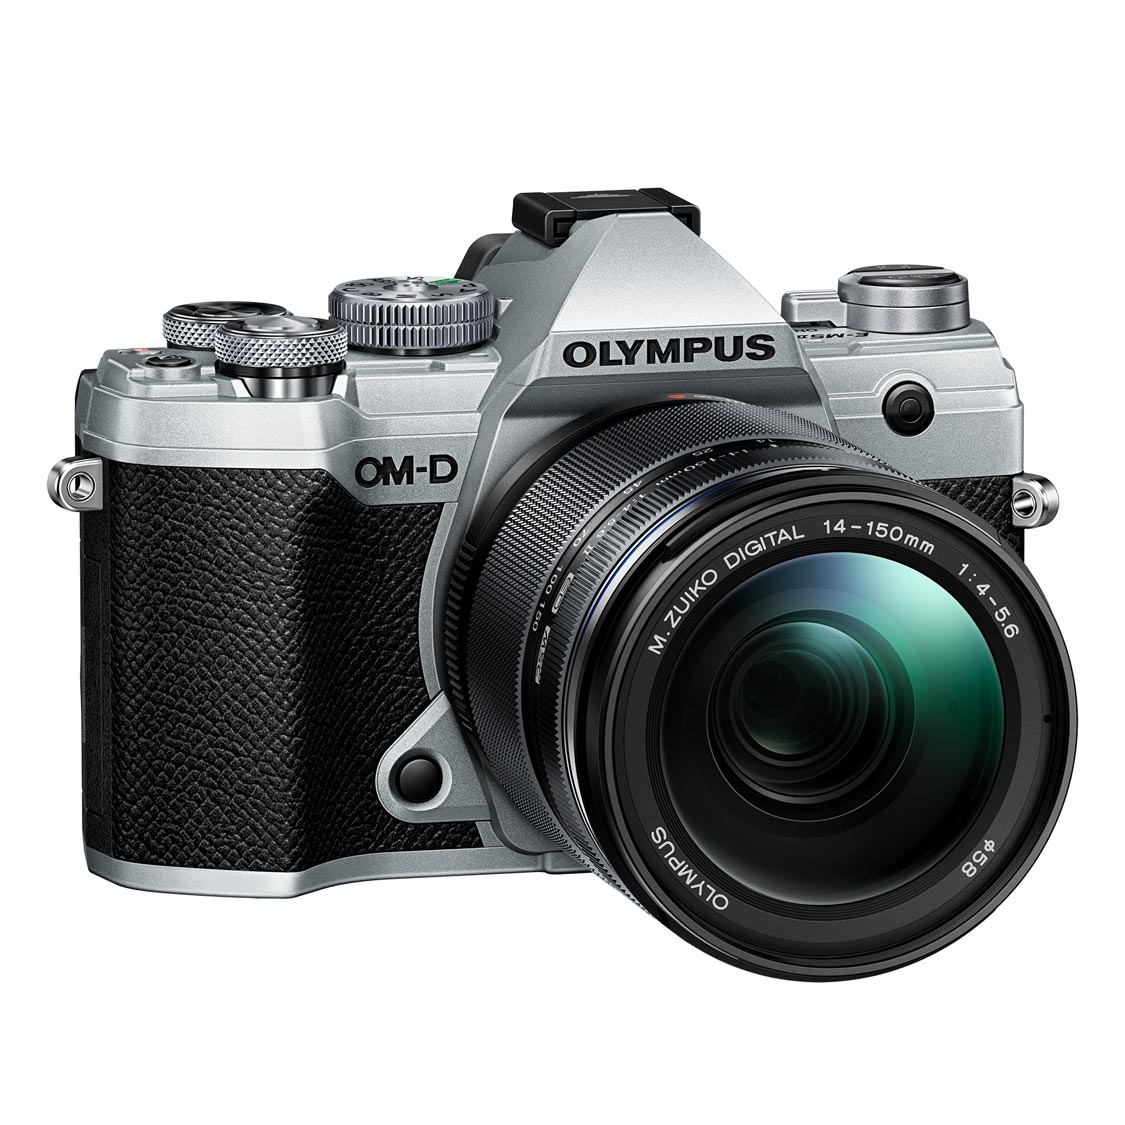 Olympus E-M5 Mark III Camera (silver) with 14-150mm Lens